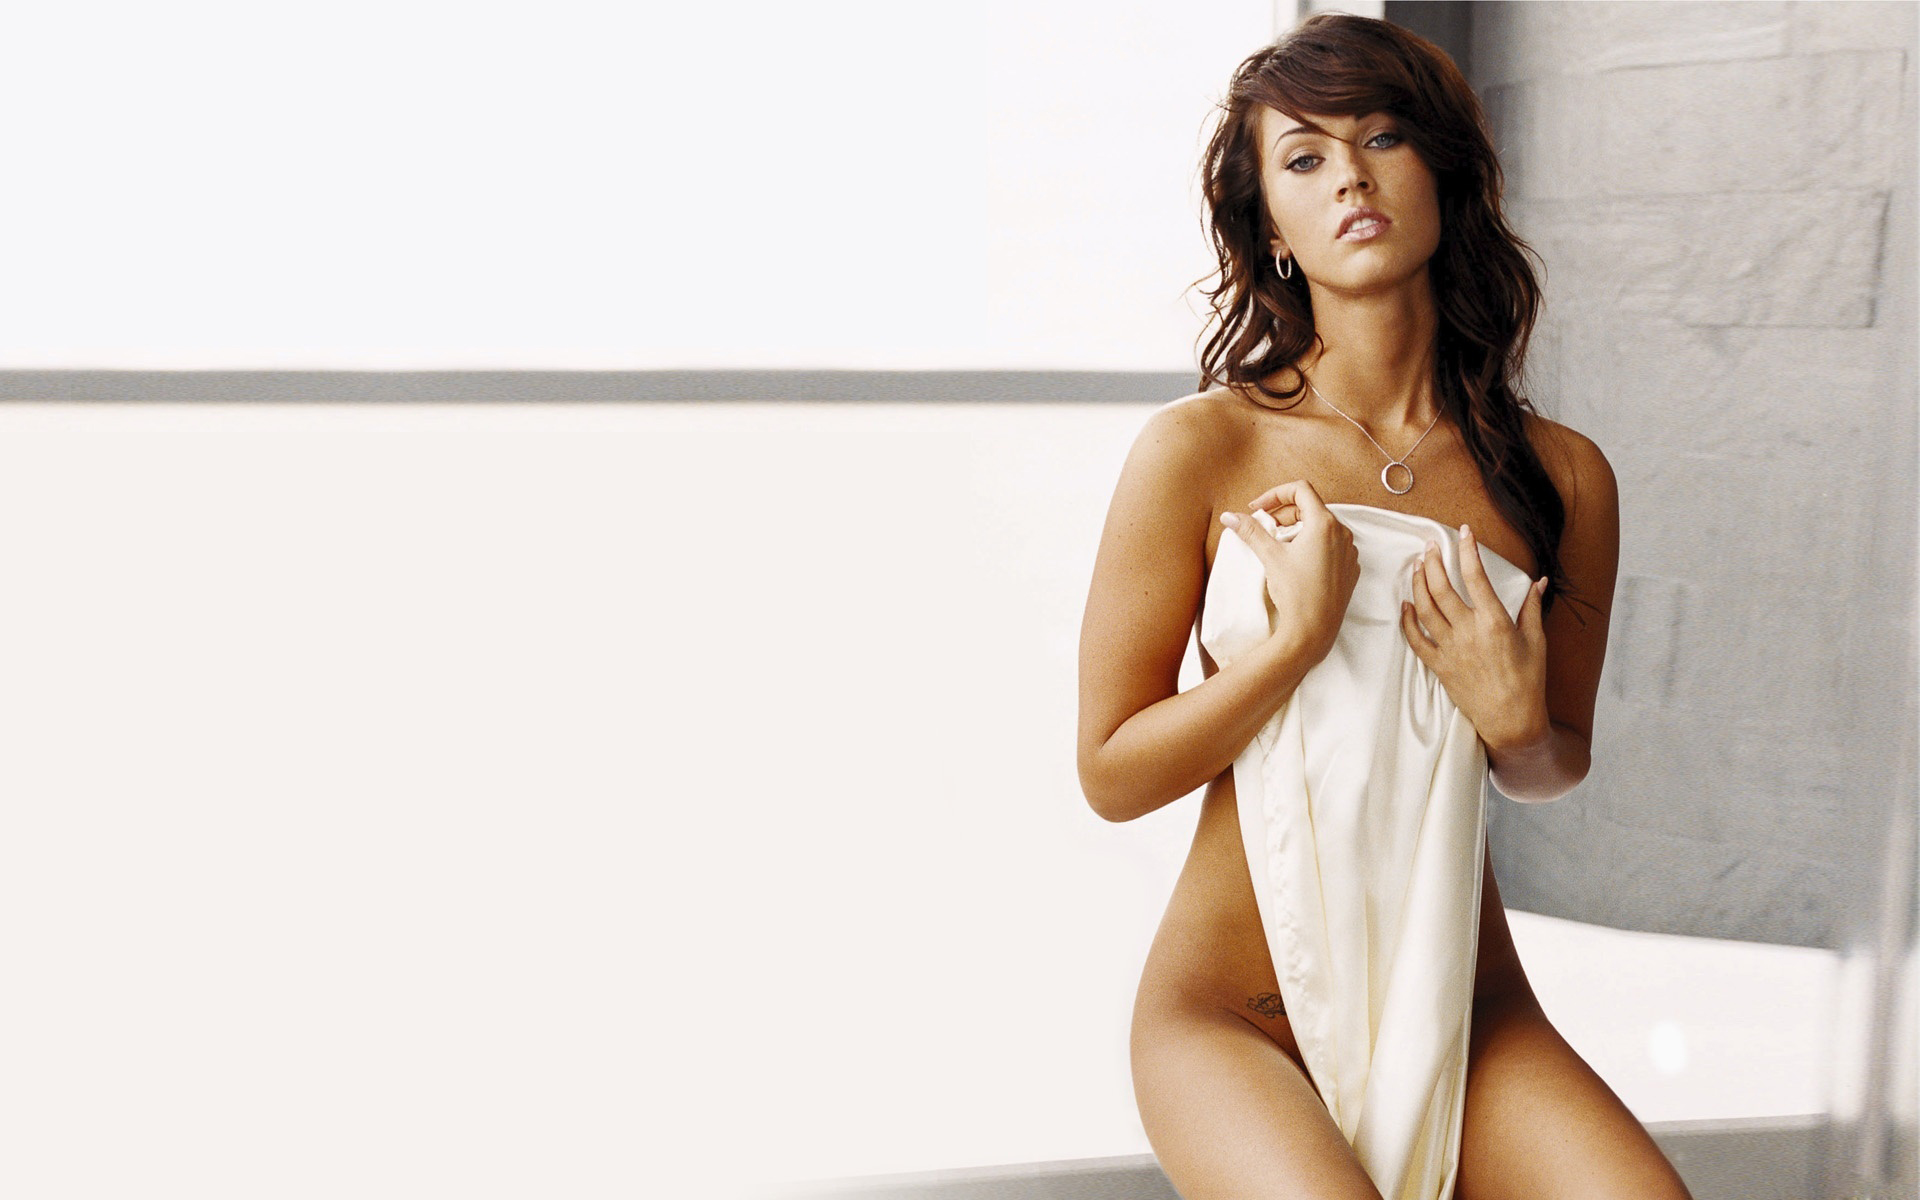 nude pics of hollywood actresses  648246